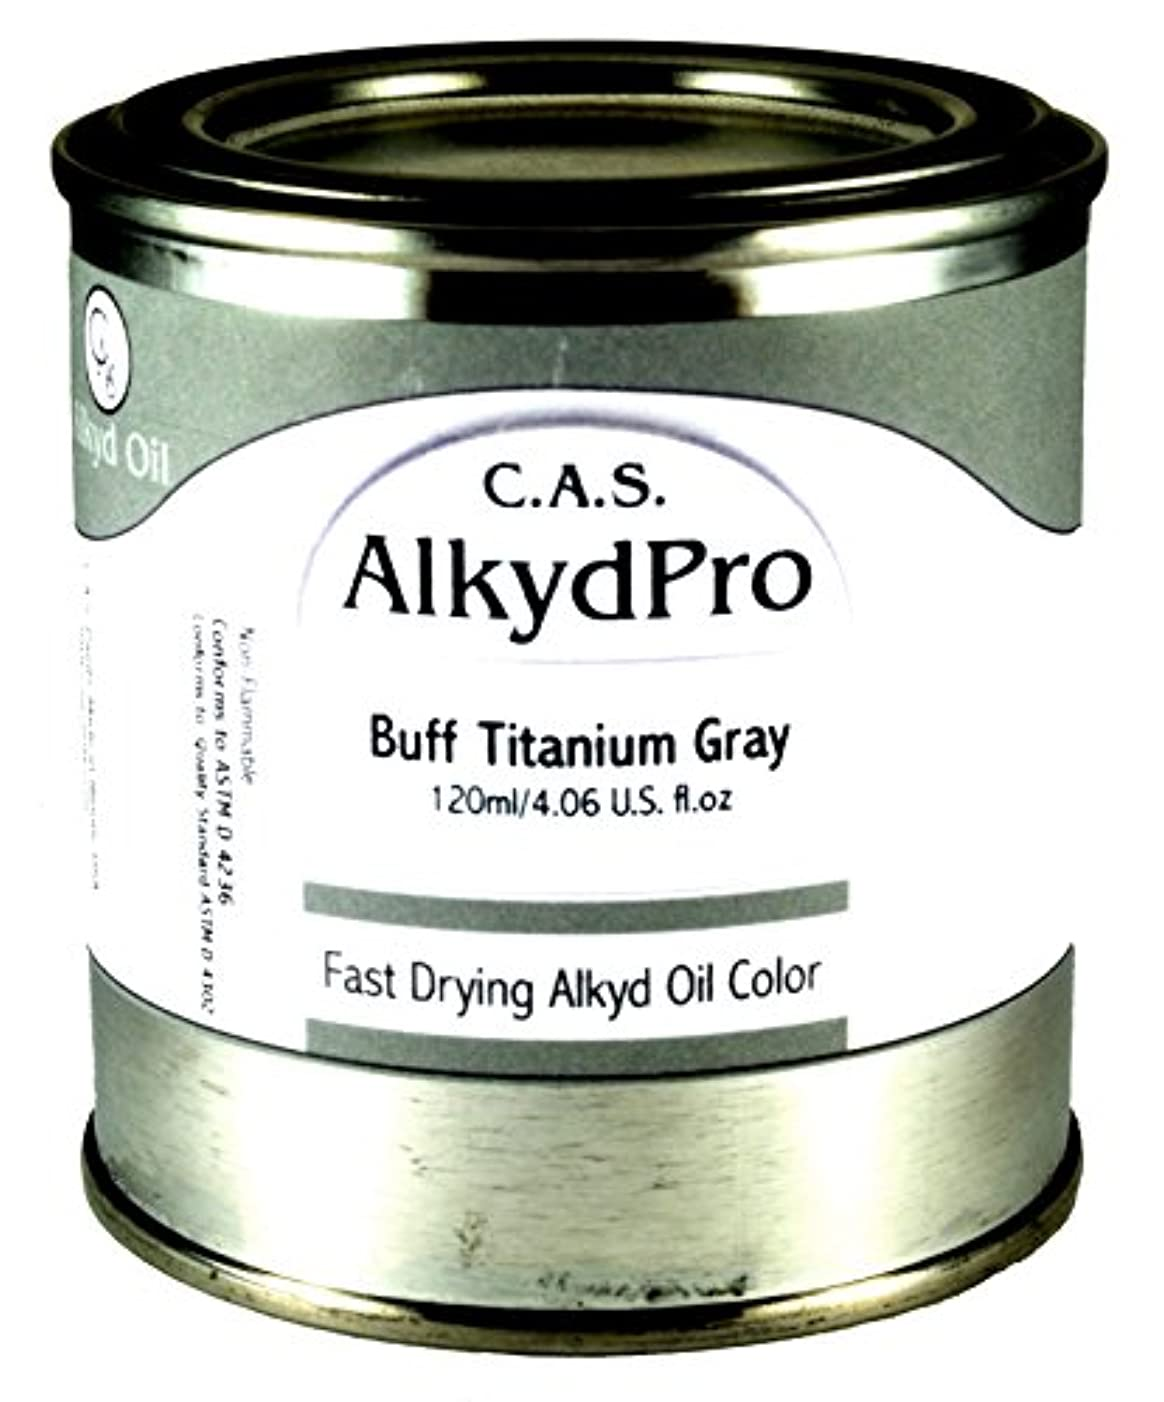 C.A.S. Paints AlkydPro Fast-Drying Oil Color Paint Can, 8-Ounce, Buff Titanium Gray